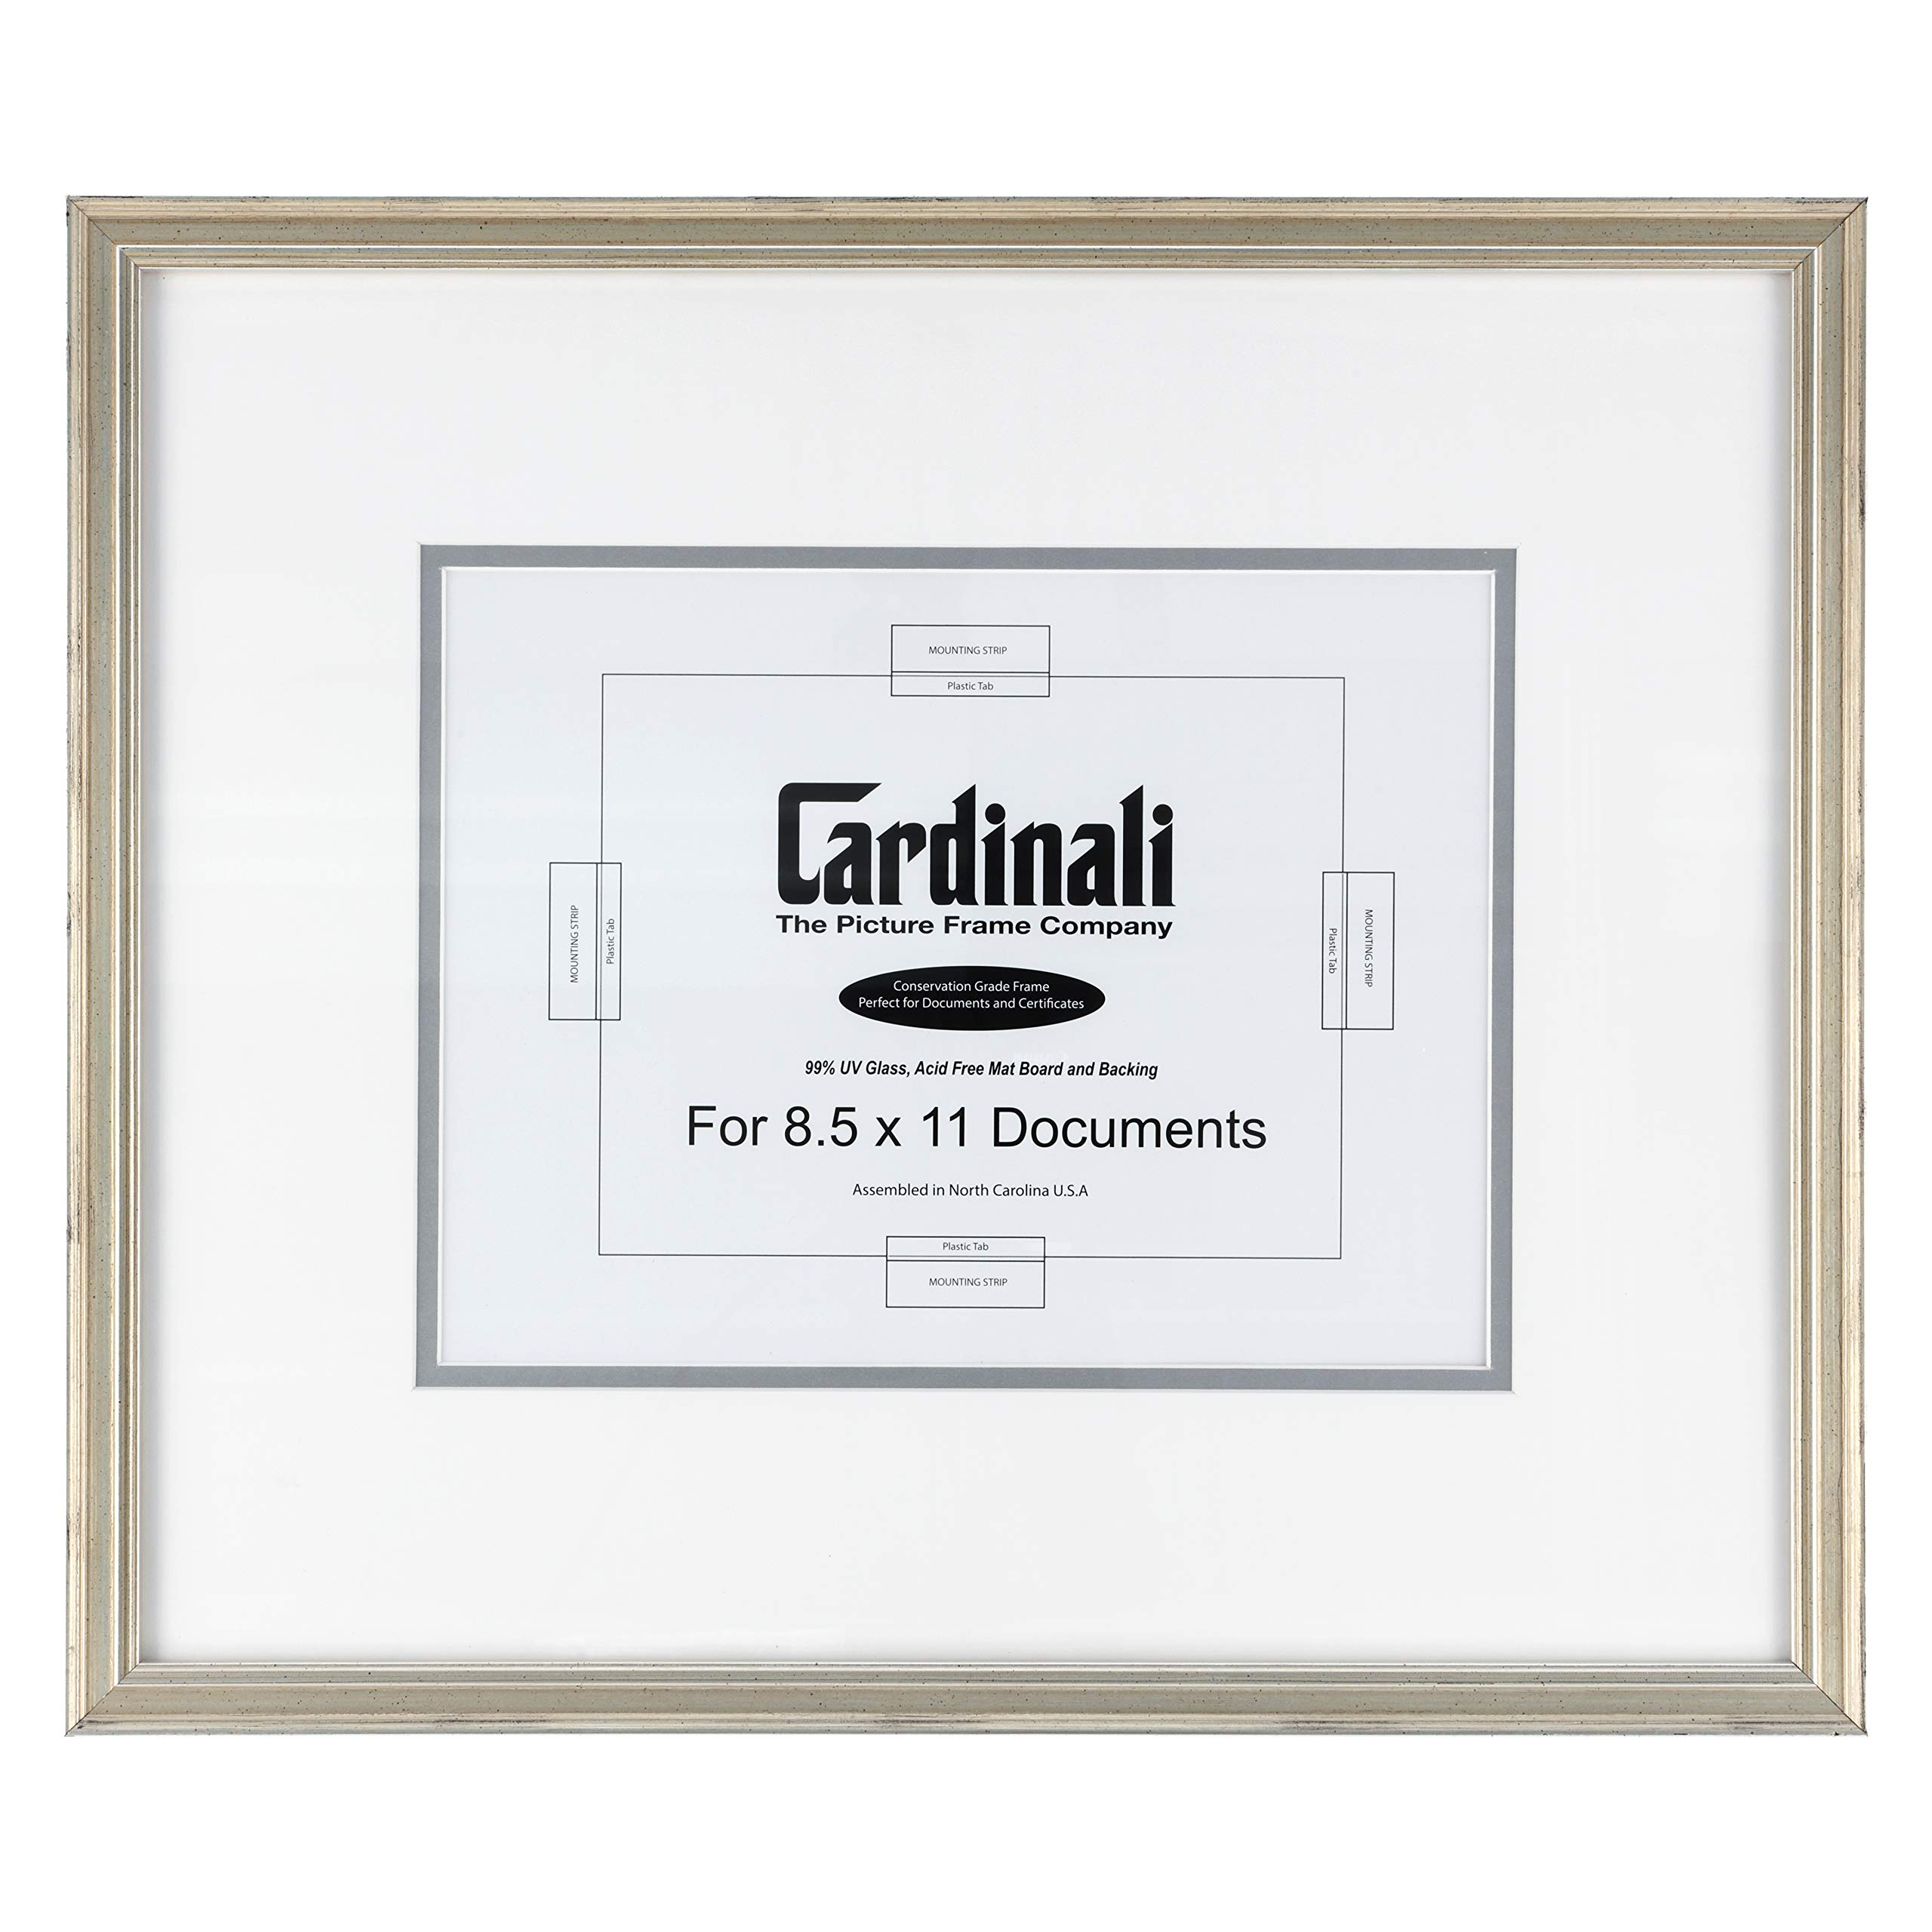 """Cardinali Diploma Frame - Archival University College Graduation High School Diploma, Document, Certificate Frame Glass & Hanging Hardware - Warm Silver - 8.5""""x11"""" Opening, Frame Size 18""""x15.5"""""""